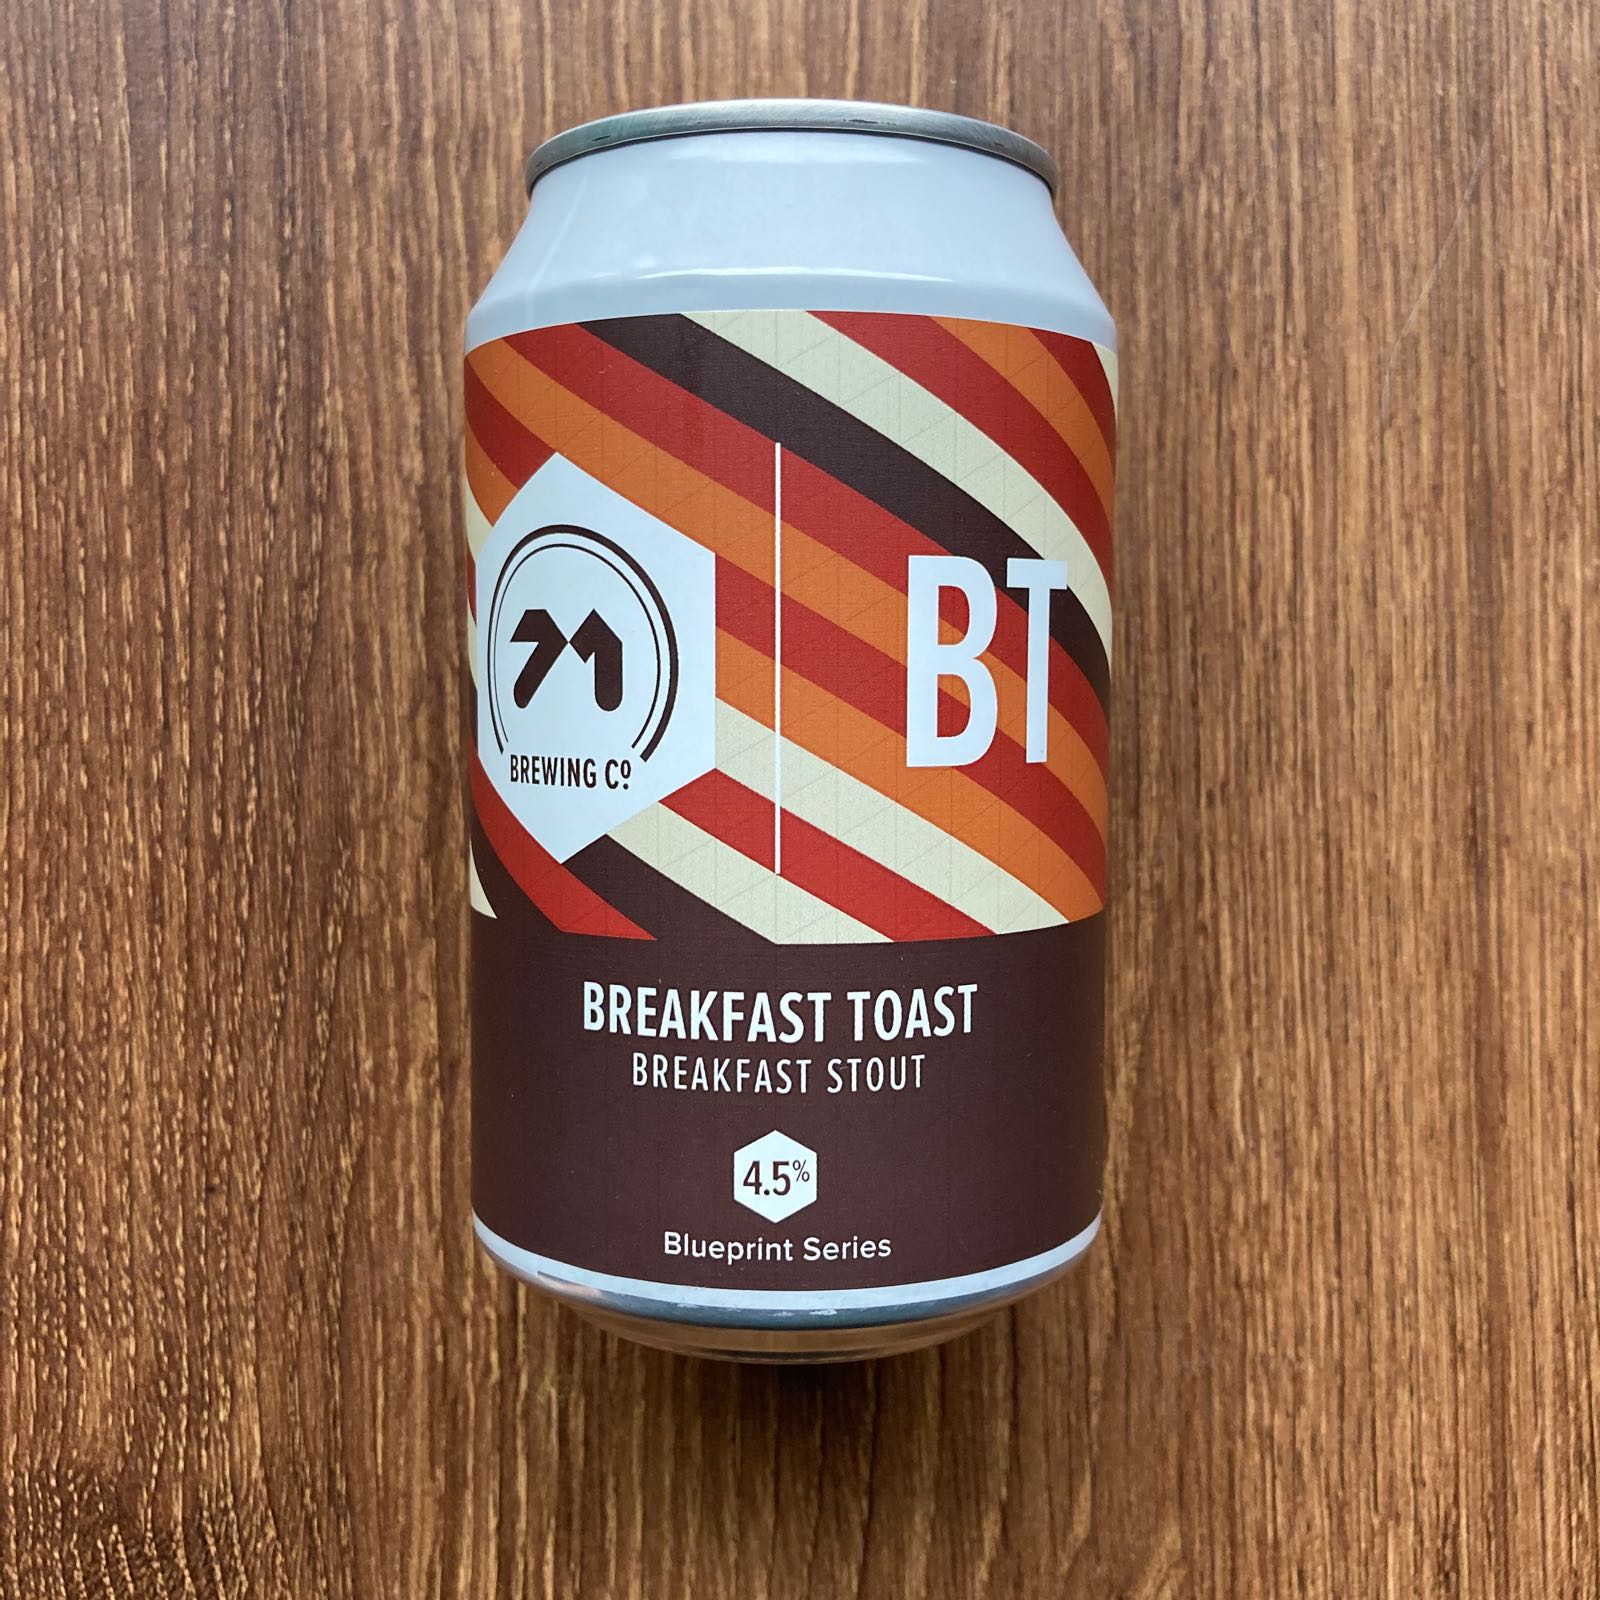 71 Brewing - Breakfast Toast